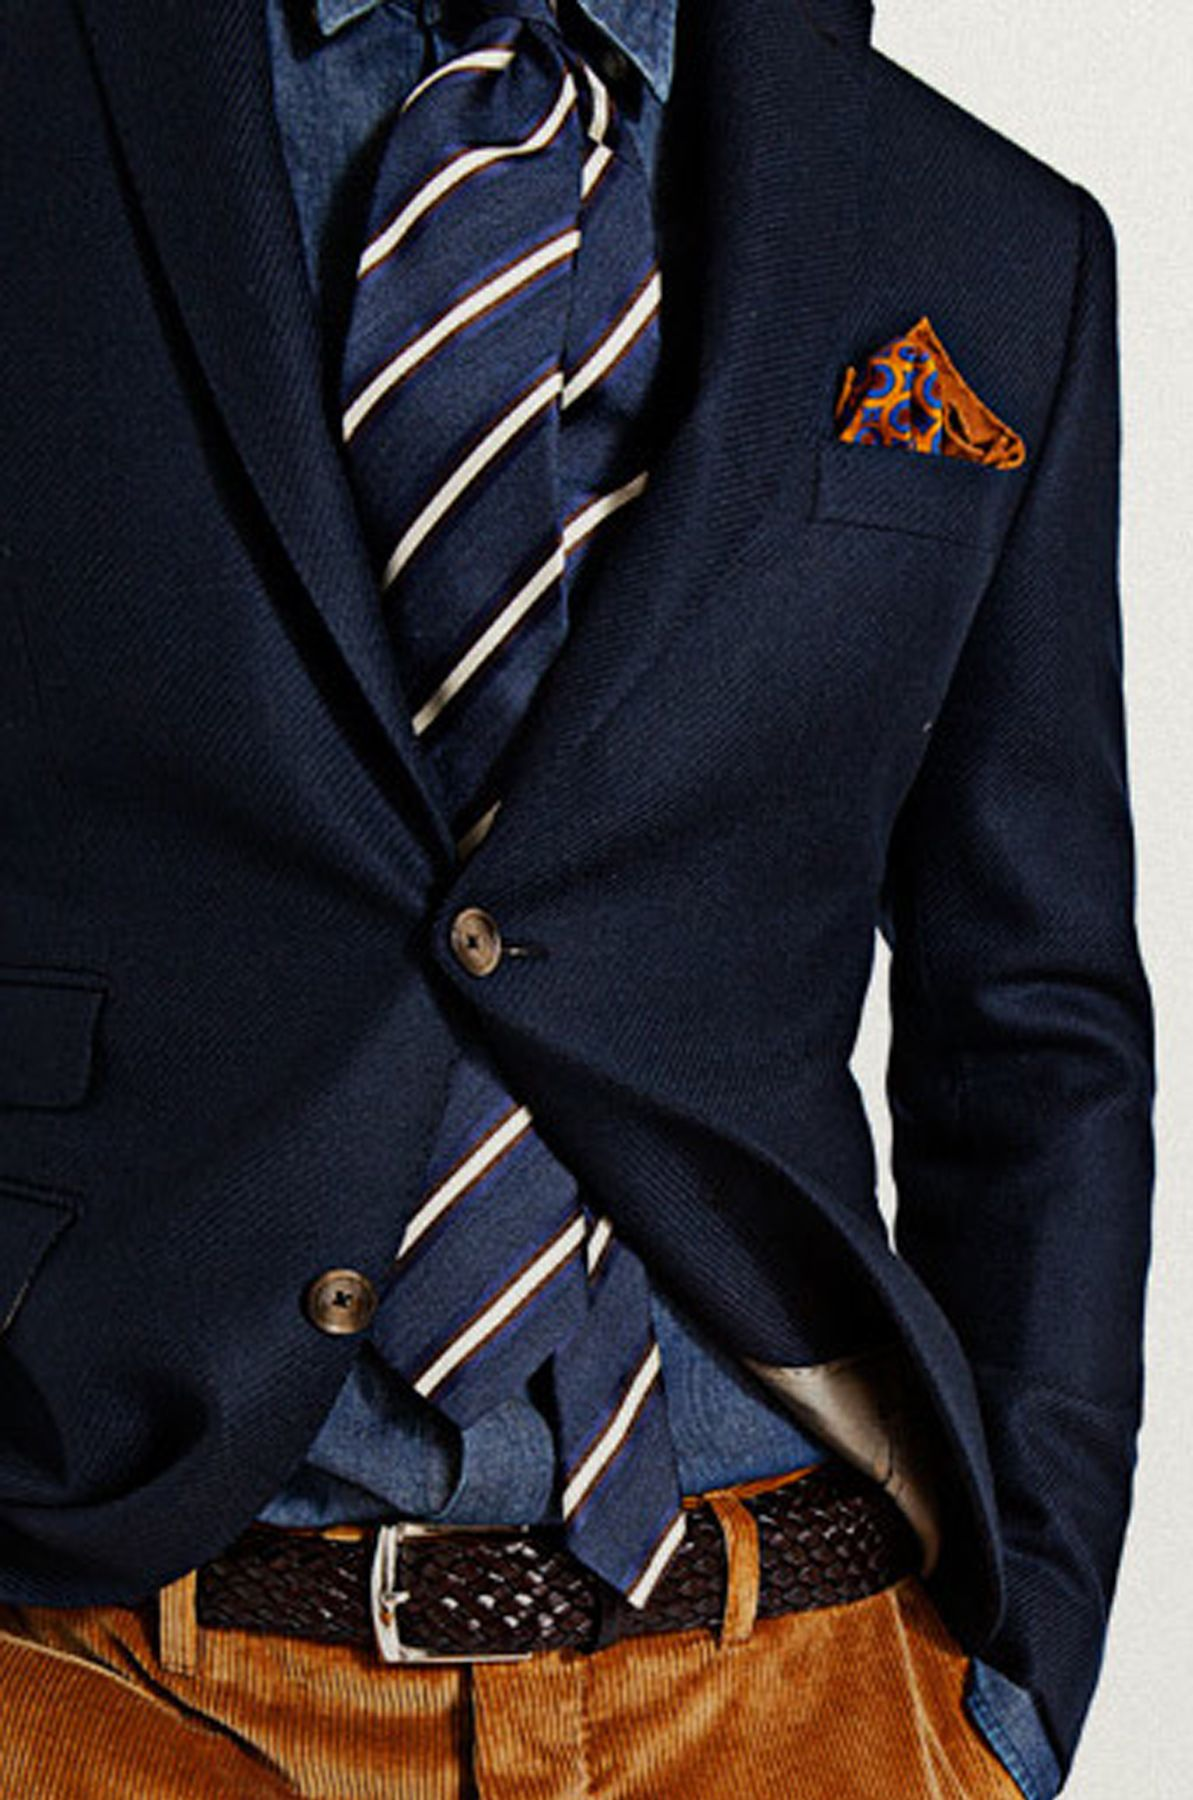 Mens jacket button rules - 27 Unspoken Suit Rules Every Man Should Know